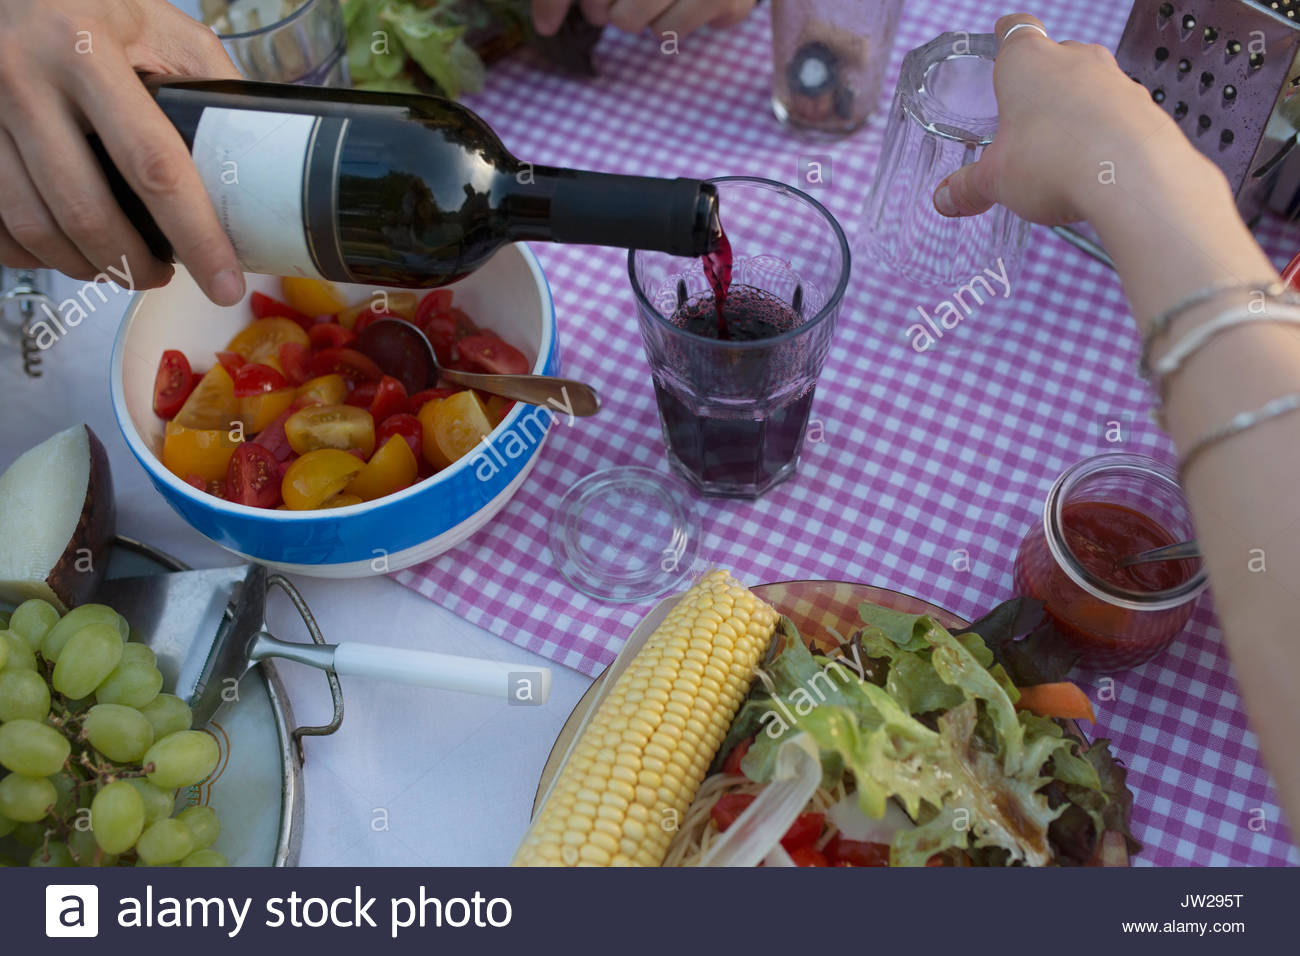 Man pouring red wine at dinner table - Stock Image